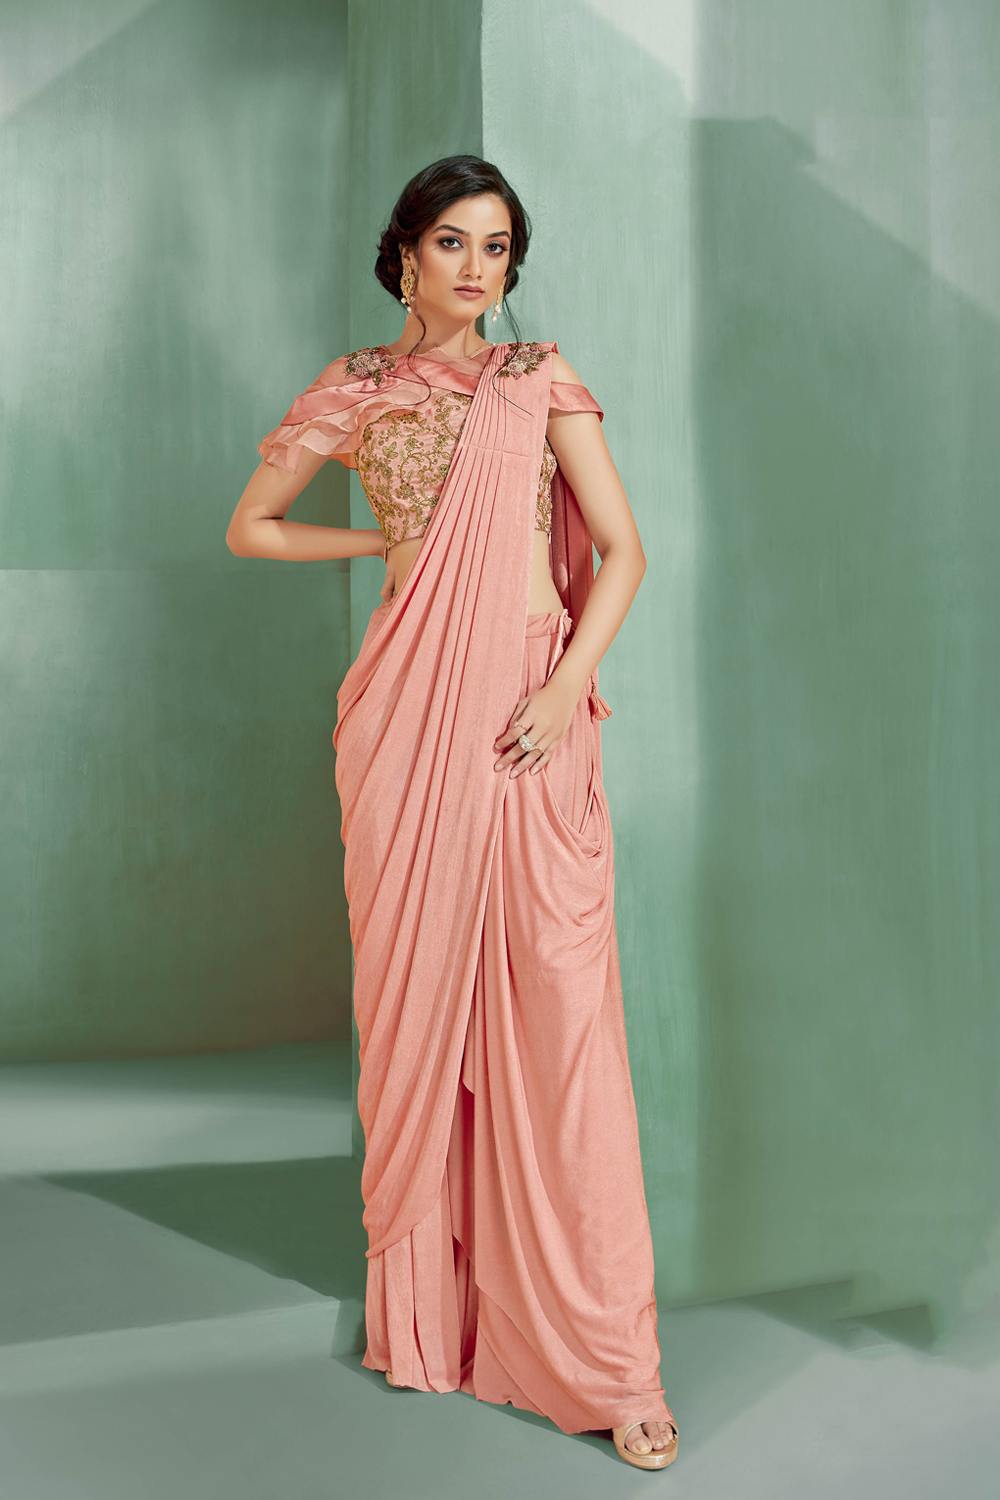 Palazzo and ethnic style of saree